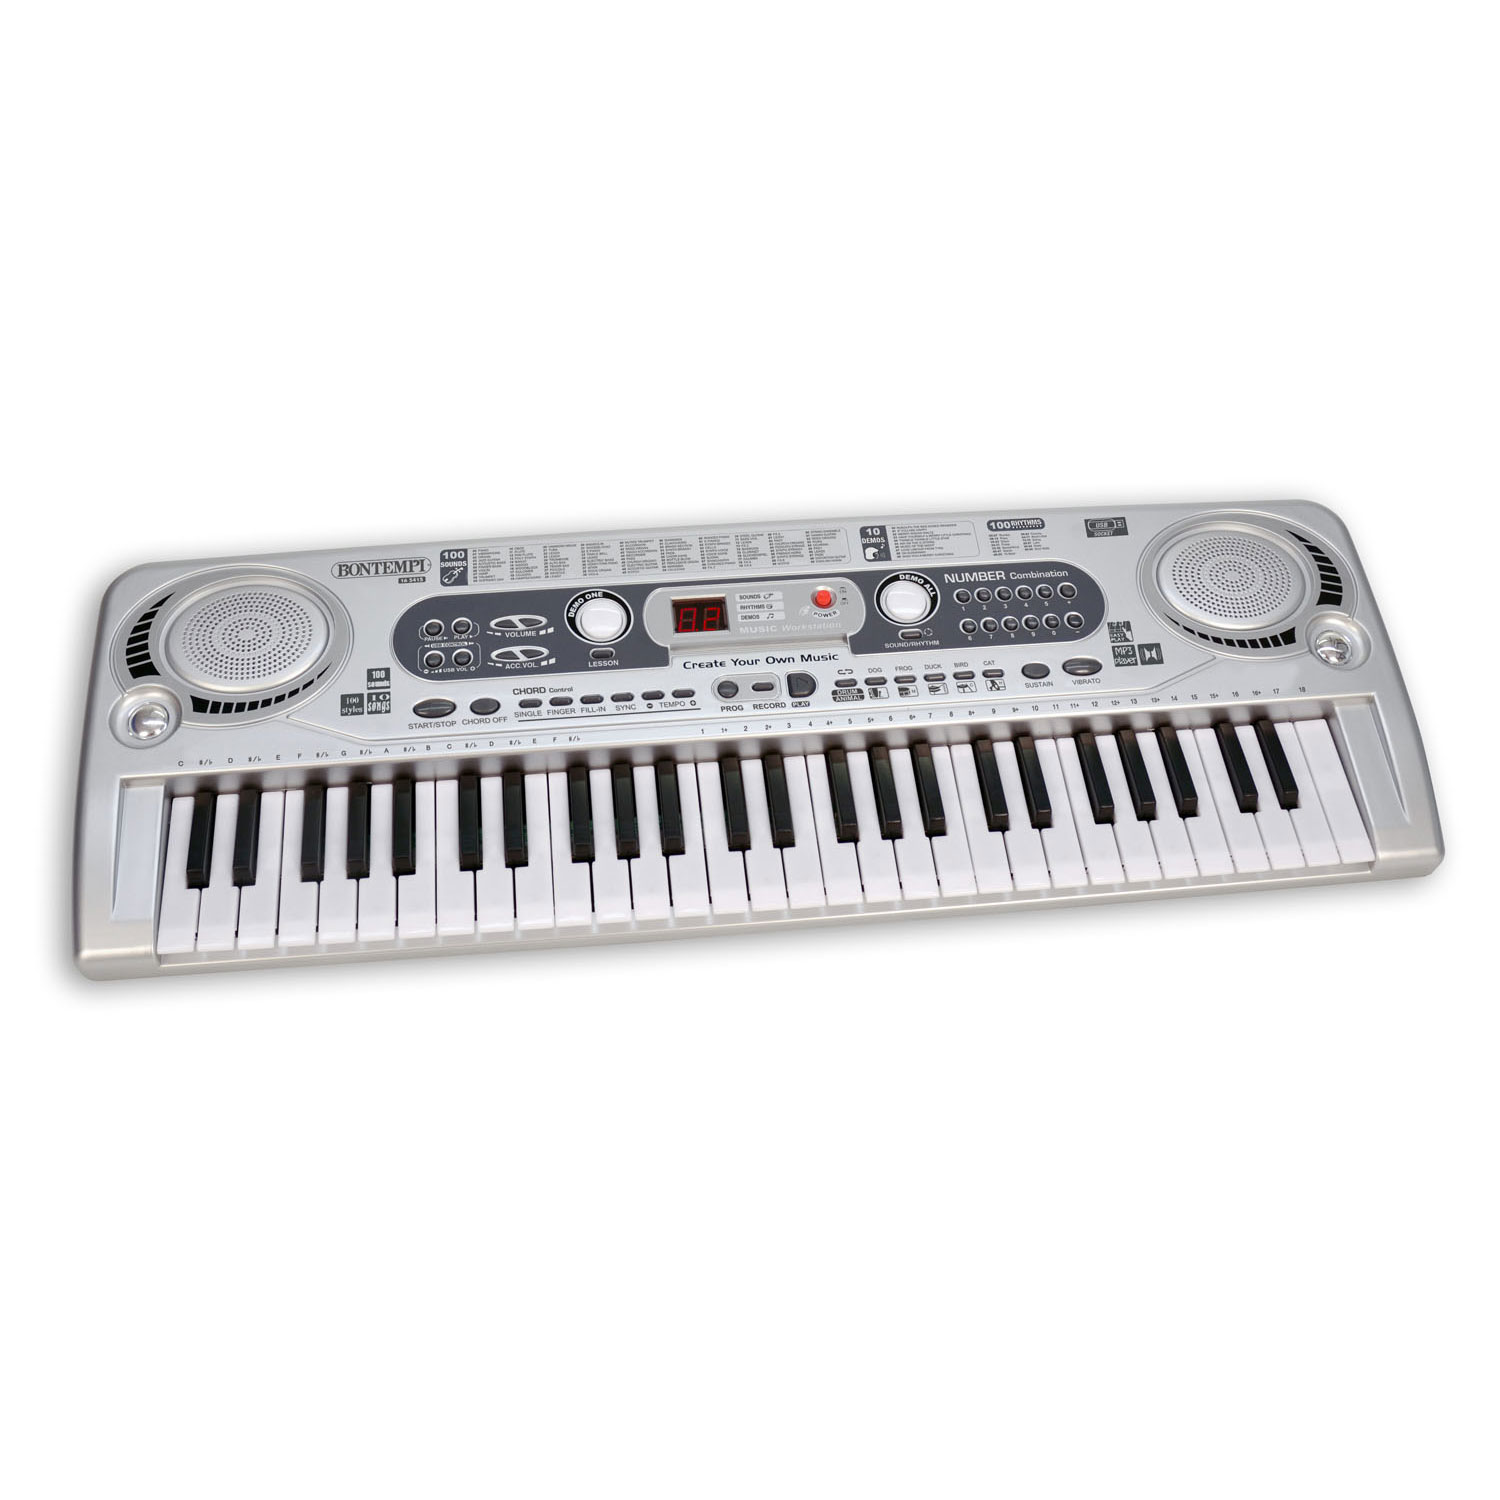 Bontempi Digitaal Keyboard, 54 Toetsen